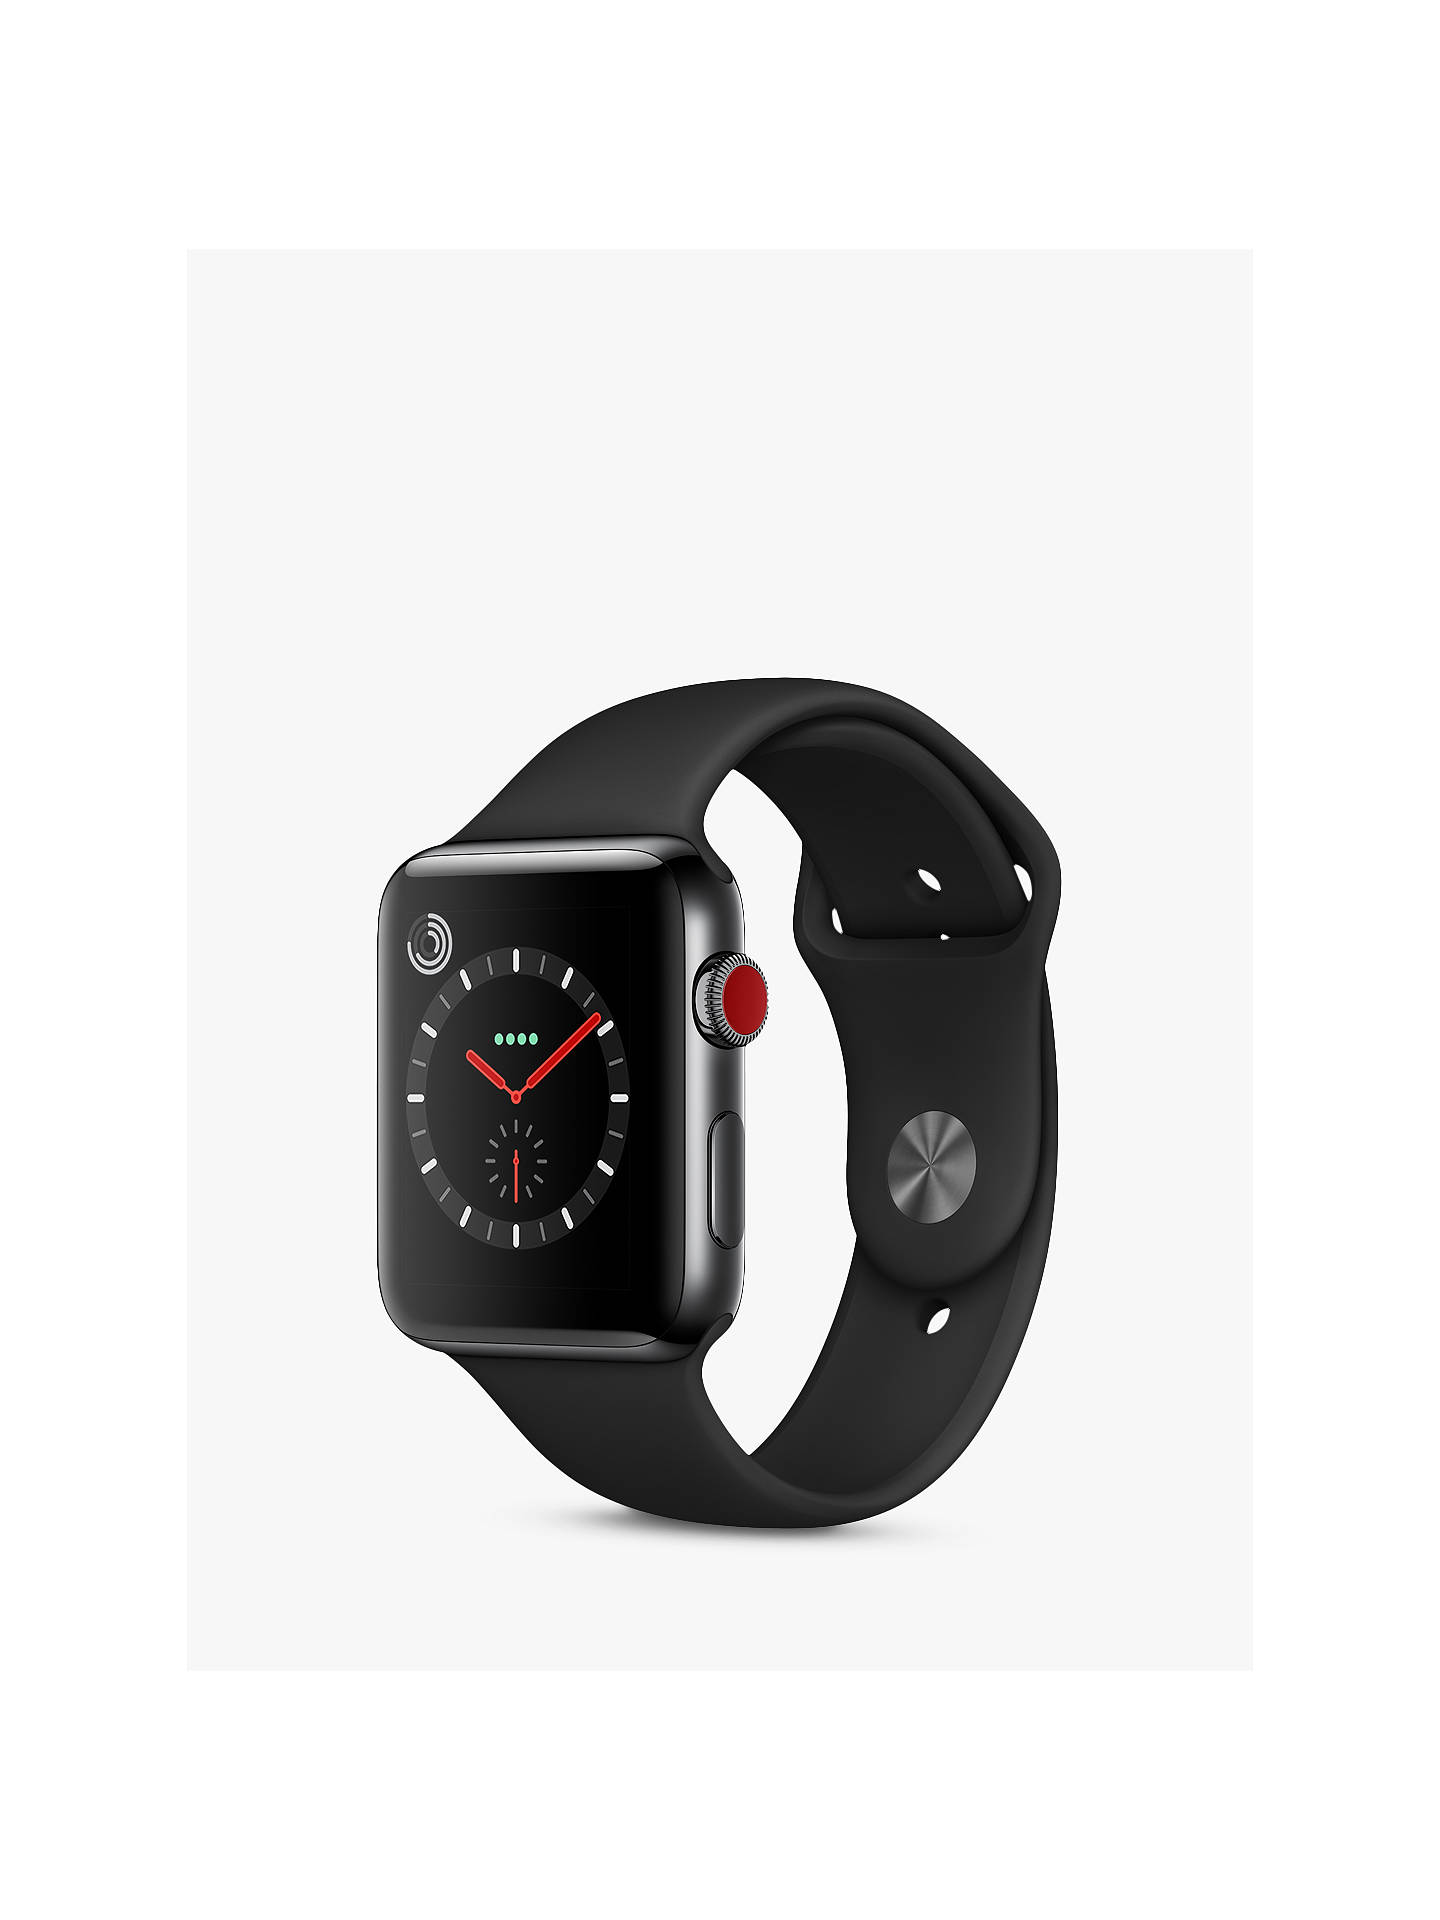 on sale ef051 84d04 Apple Watch Series 3, GPS and Cellular, 42mm Space Black Stainless Steel  Case with Sport Band, Black